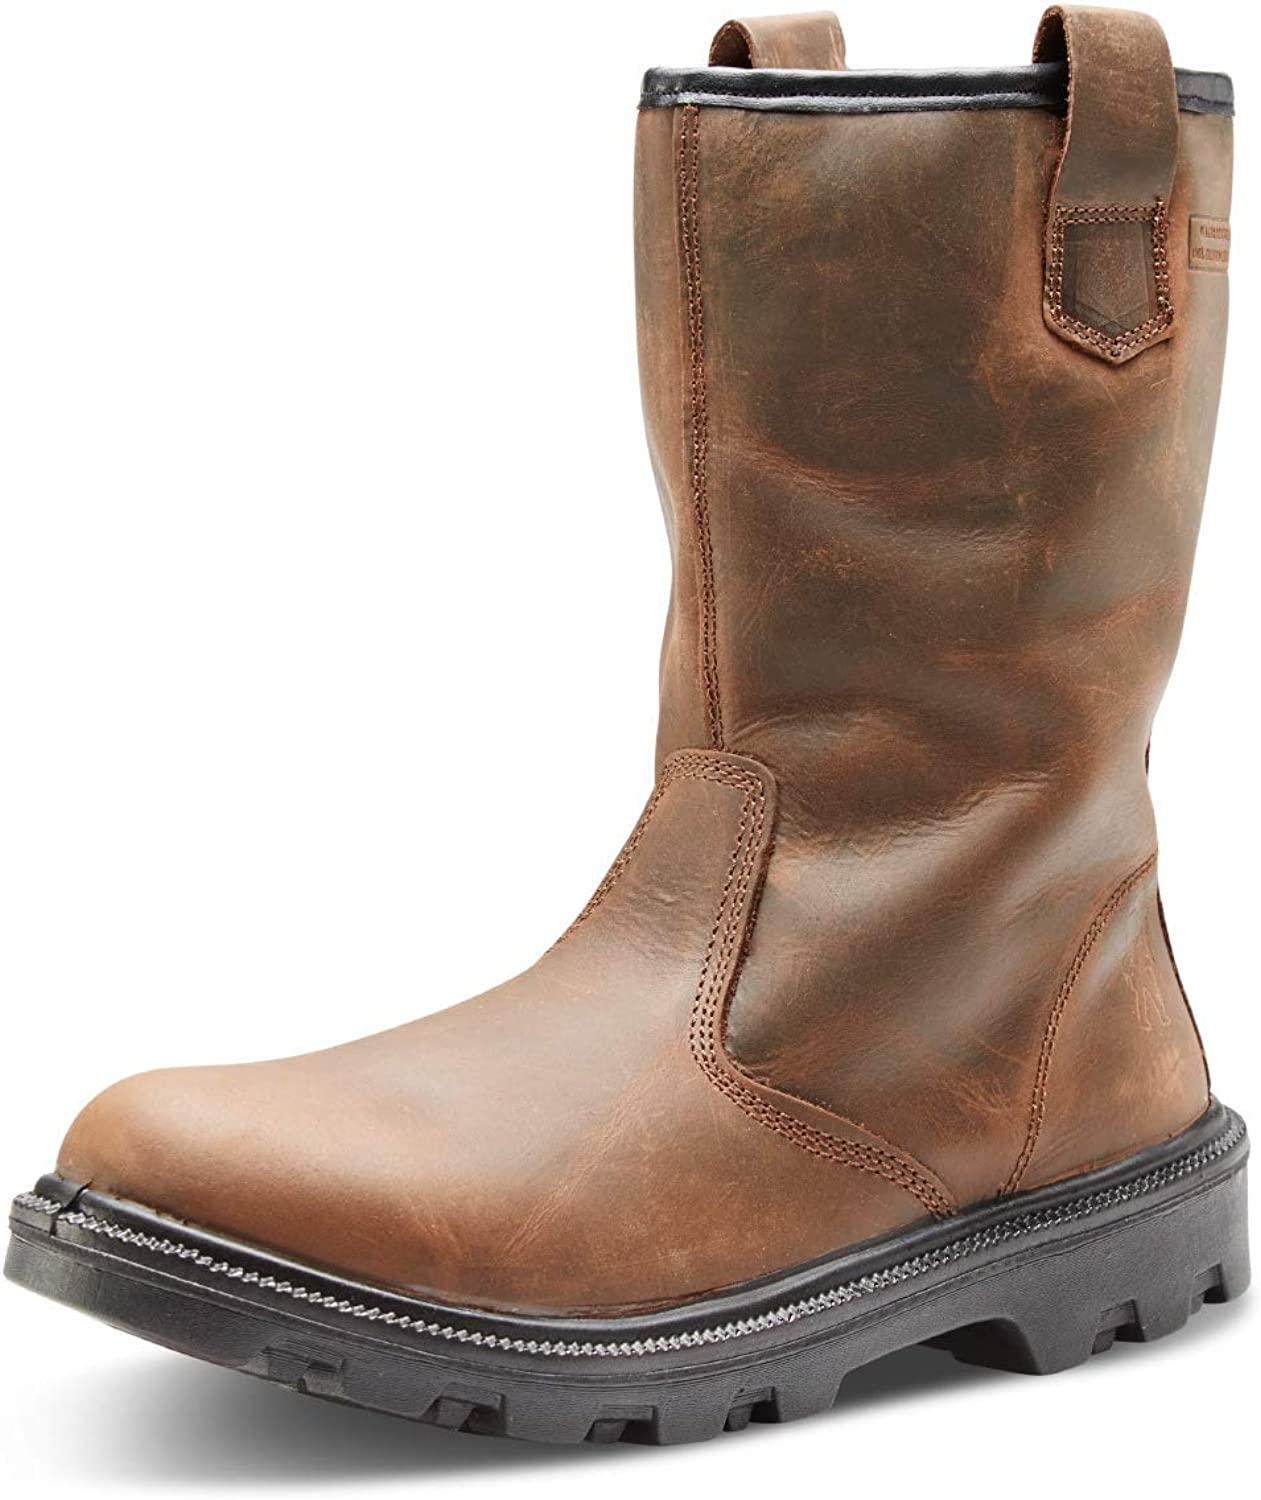 Safety Footwear Brown Water Resistant Sherpa Rigger Boot Sizes 6-12 HGSRBBS